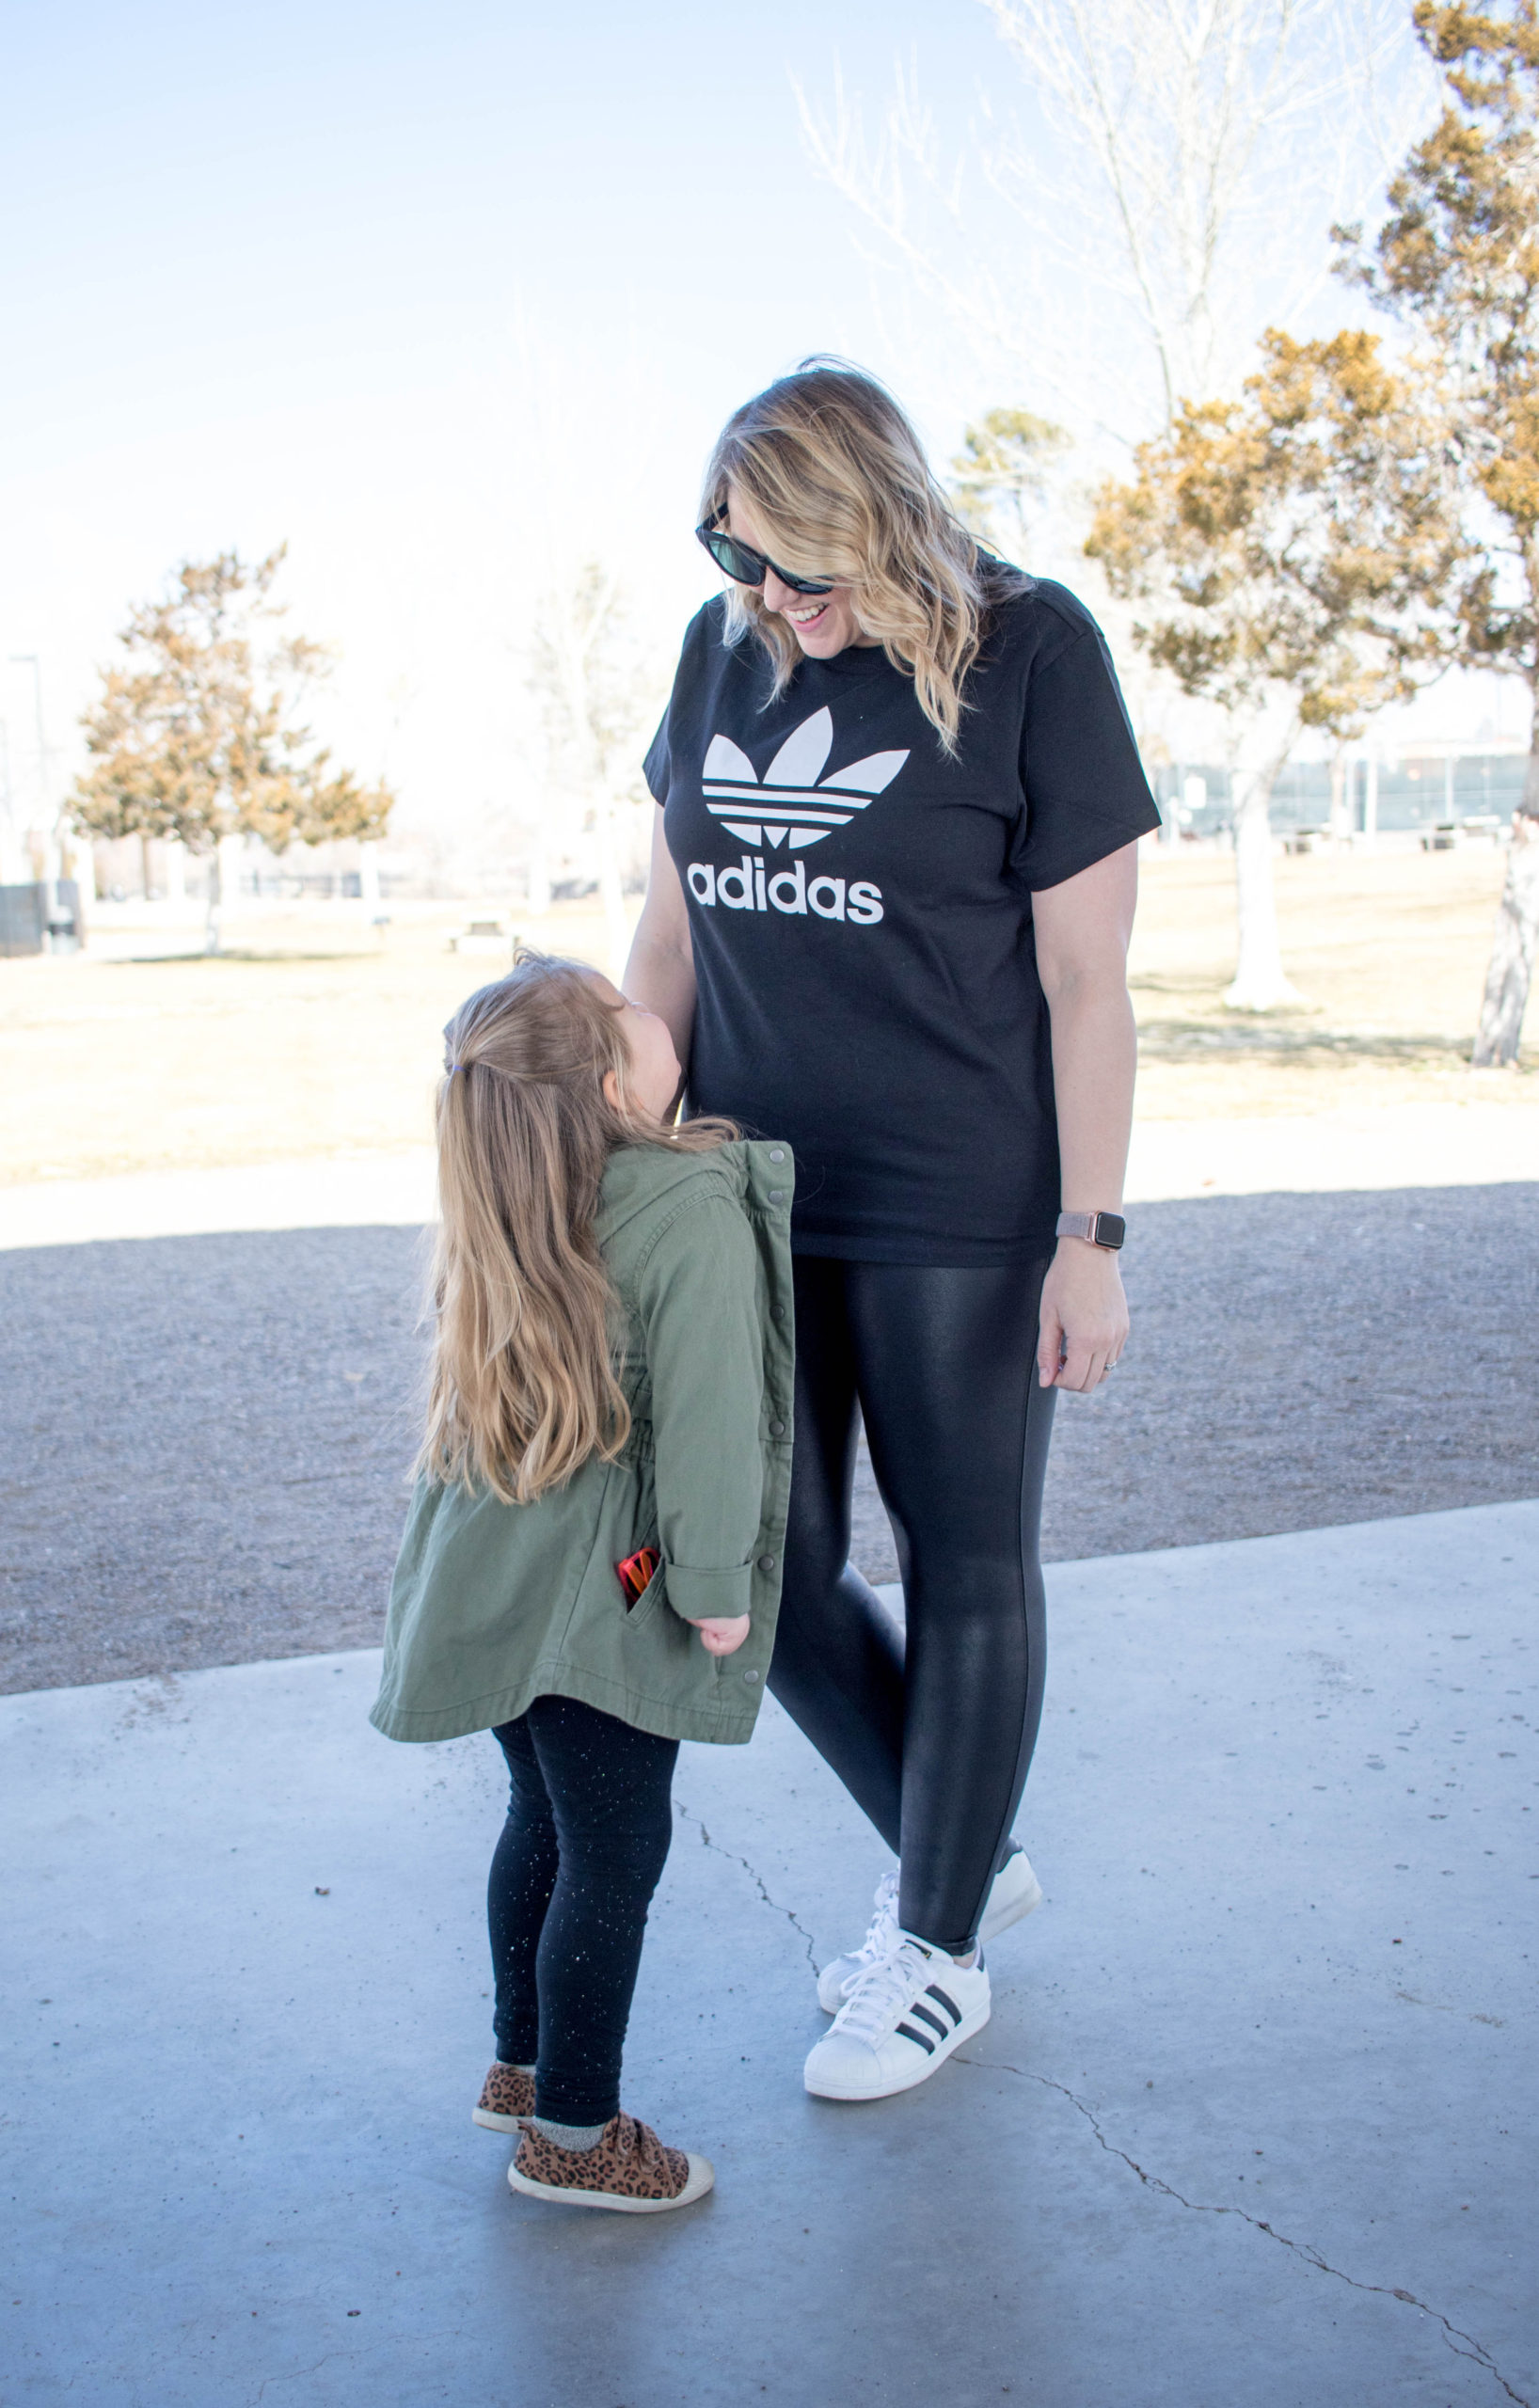 international women's day thoughts #internationalwomensday #adidas #mommyandme